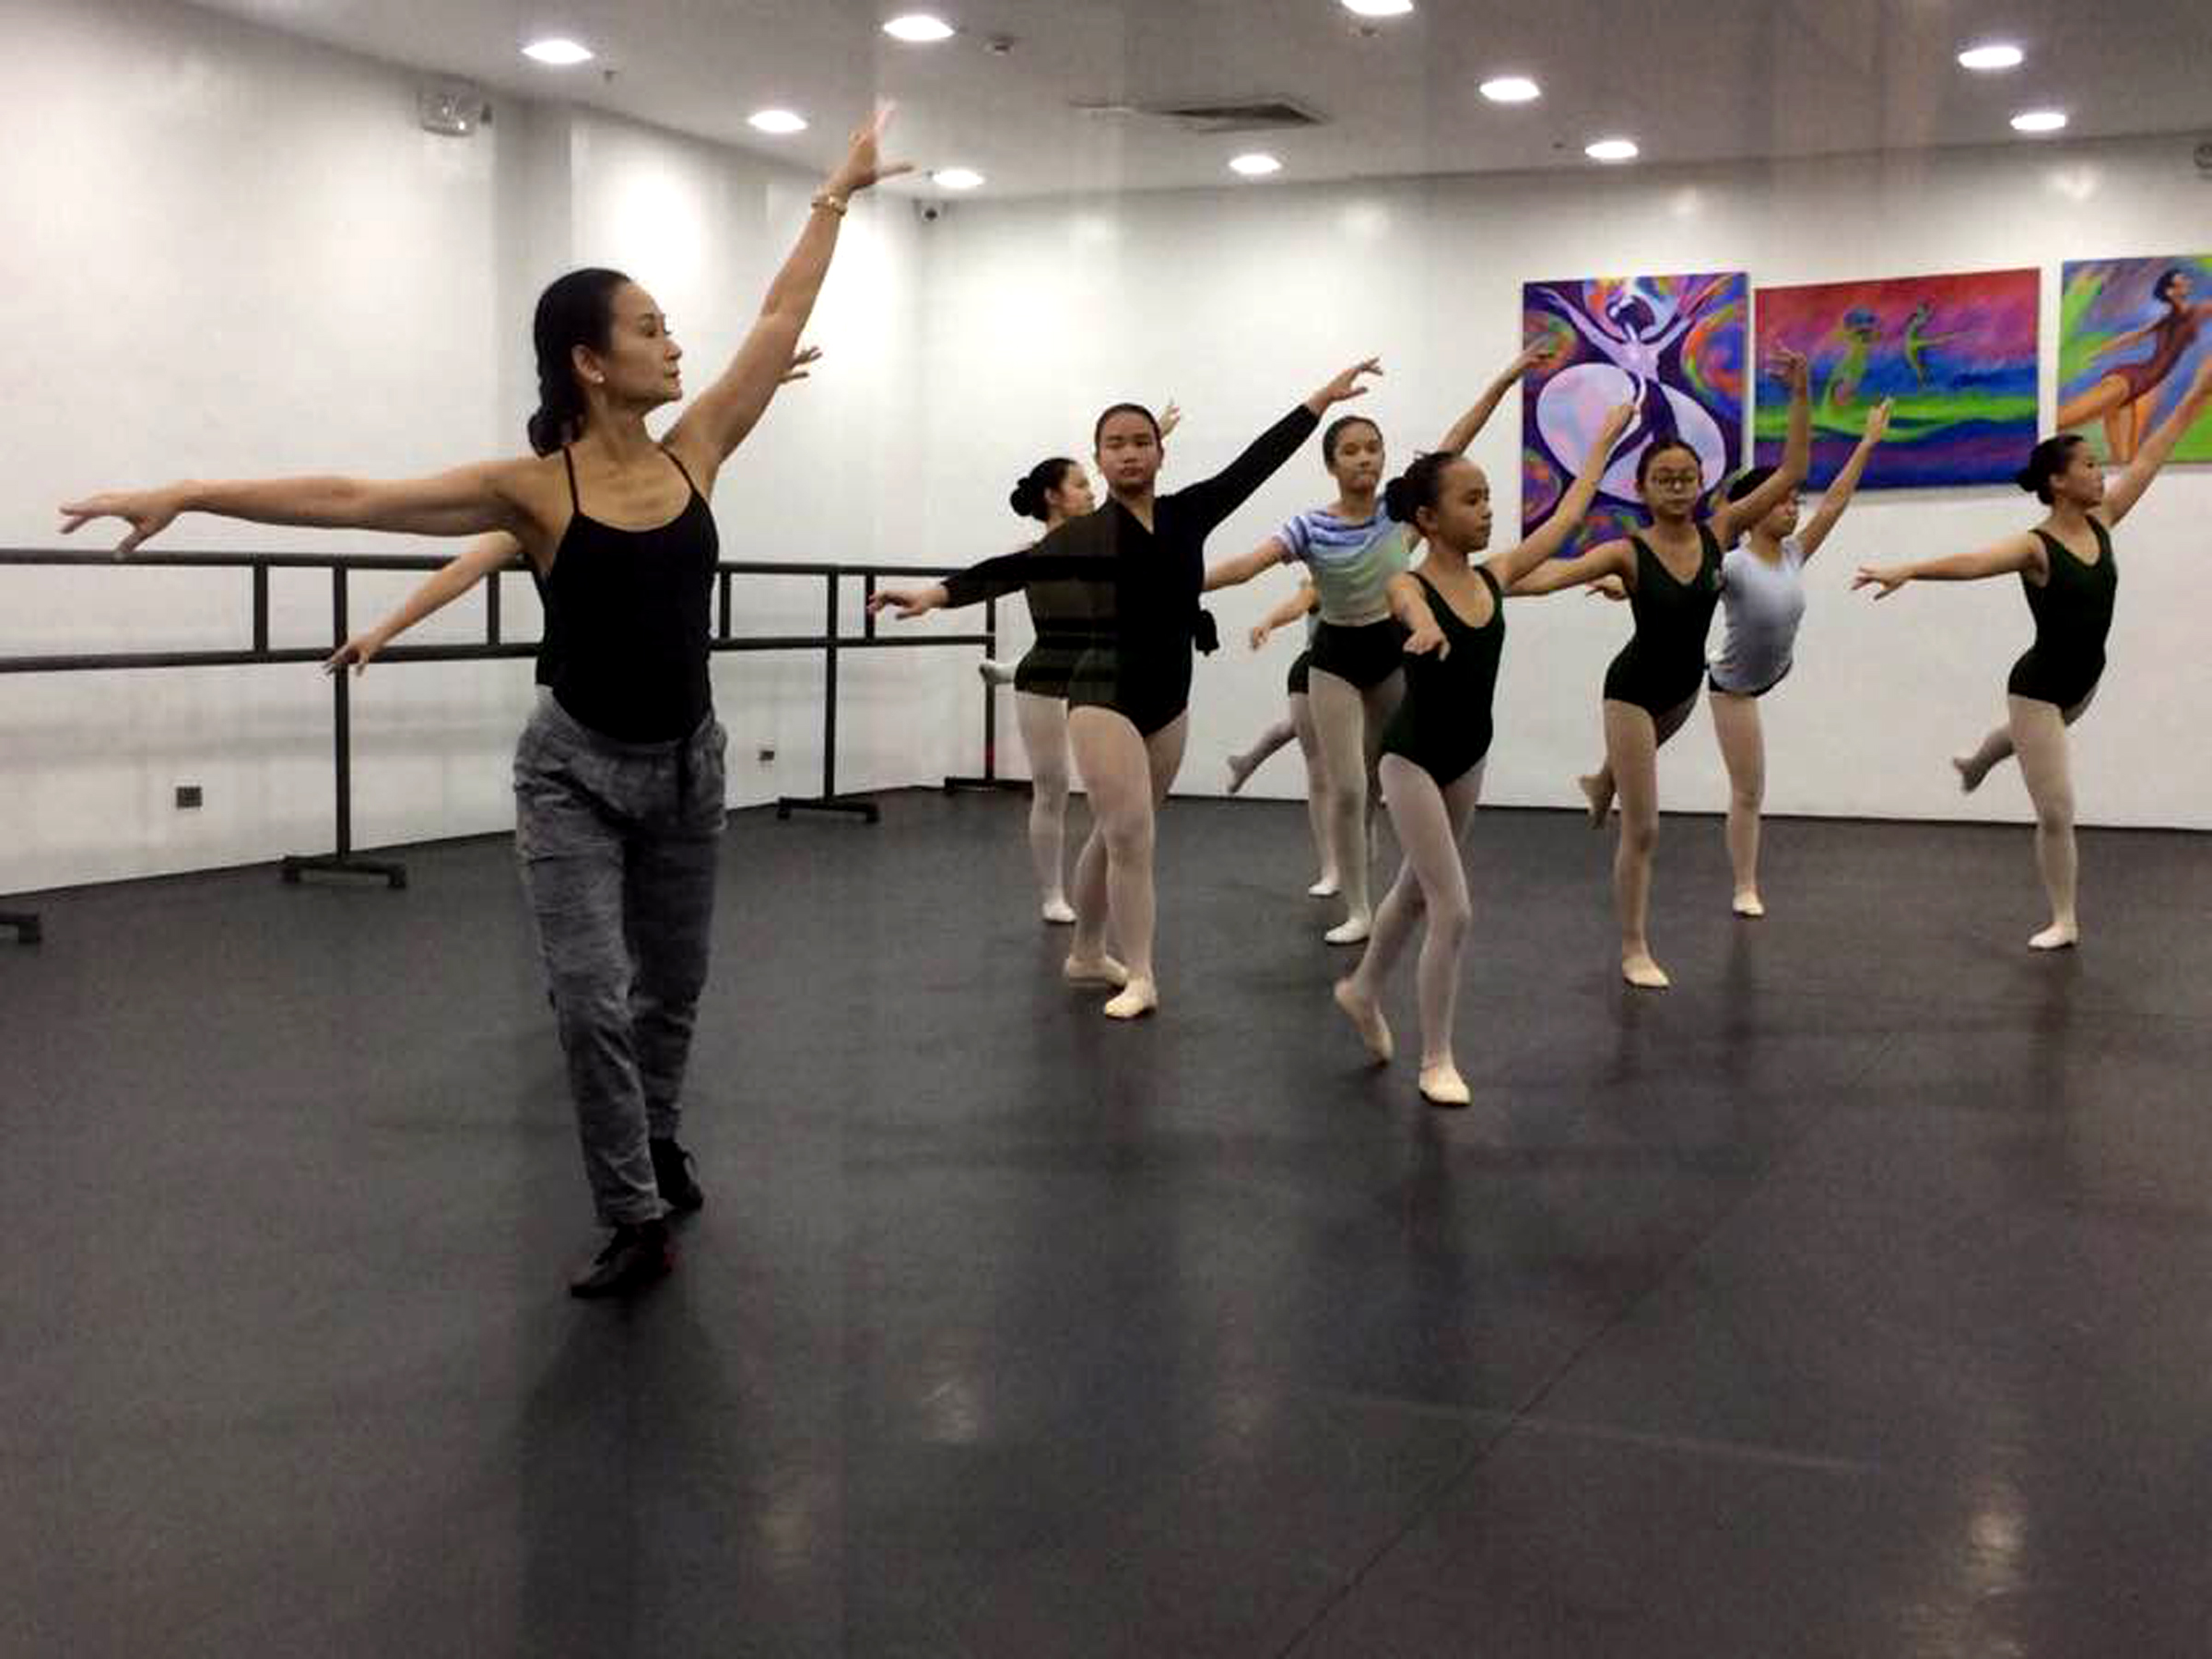 Lisa Macuja continues to teach what she learned in Russia to new generations of students in her own ballet school. Photo by Icet Barroso